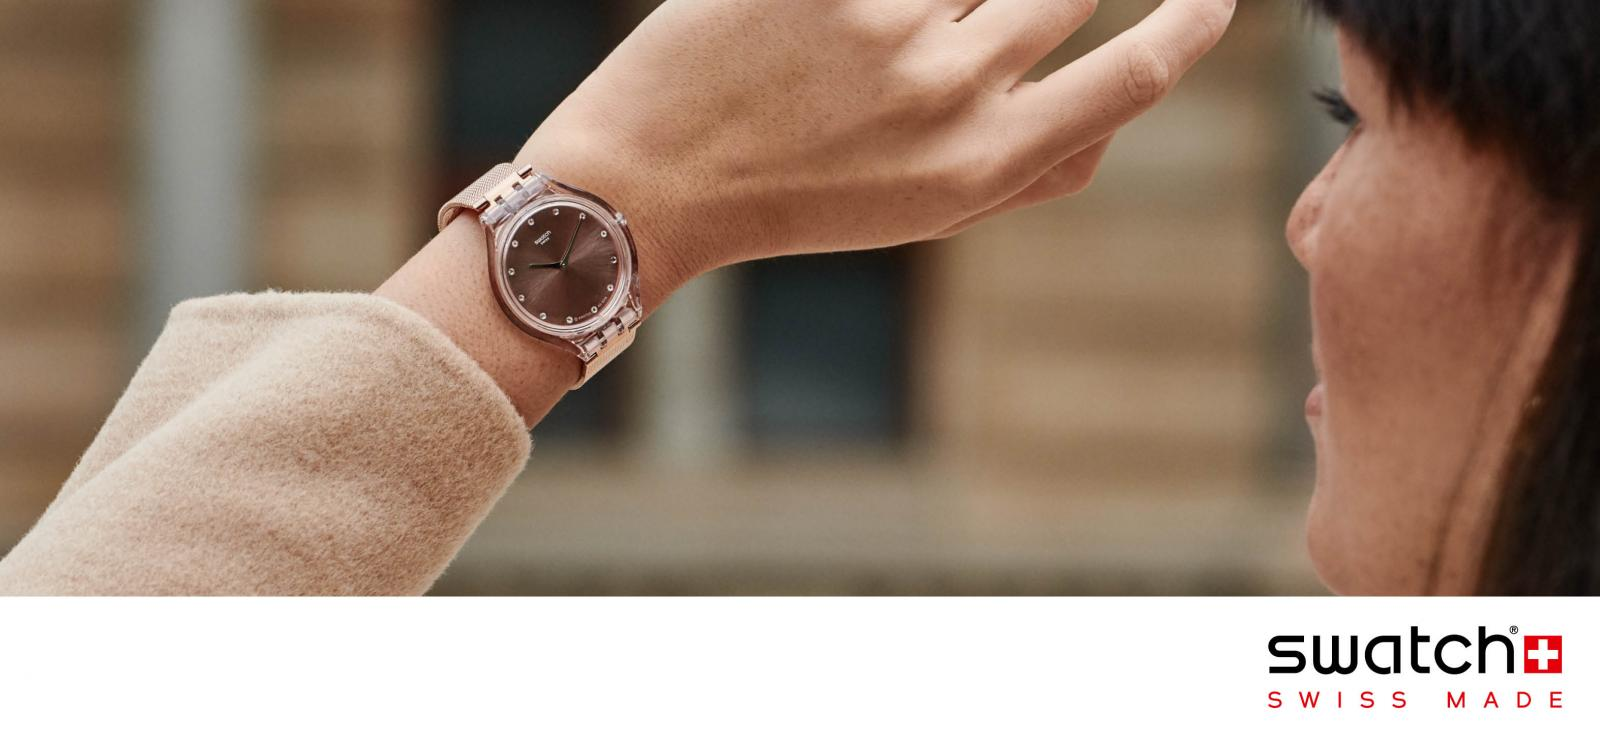 Skin Ultra thin watches